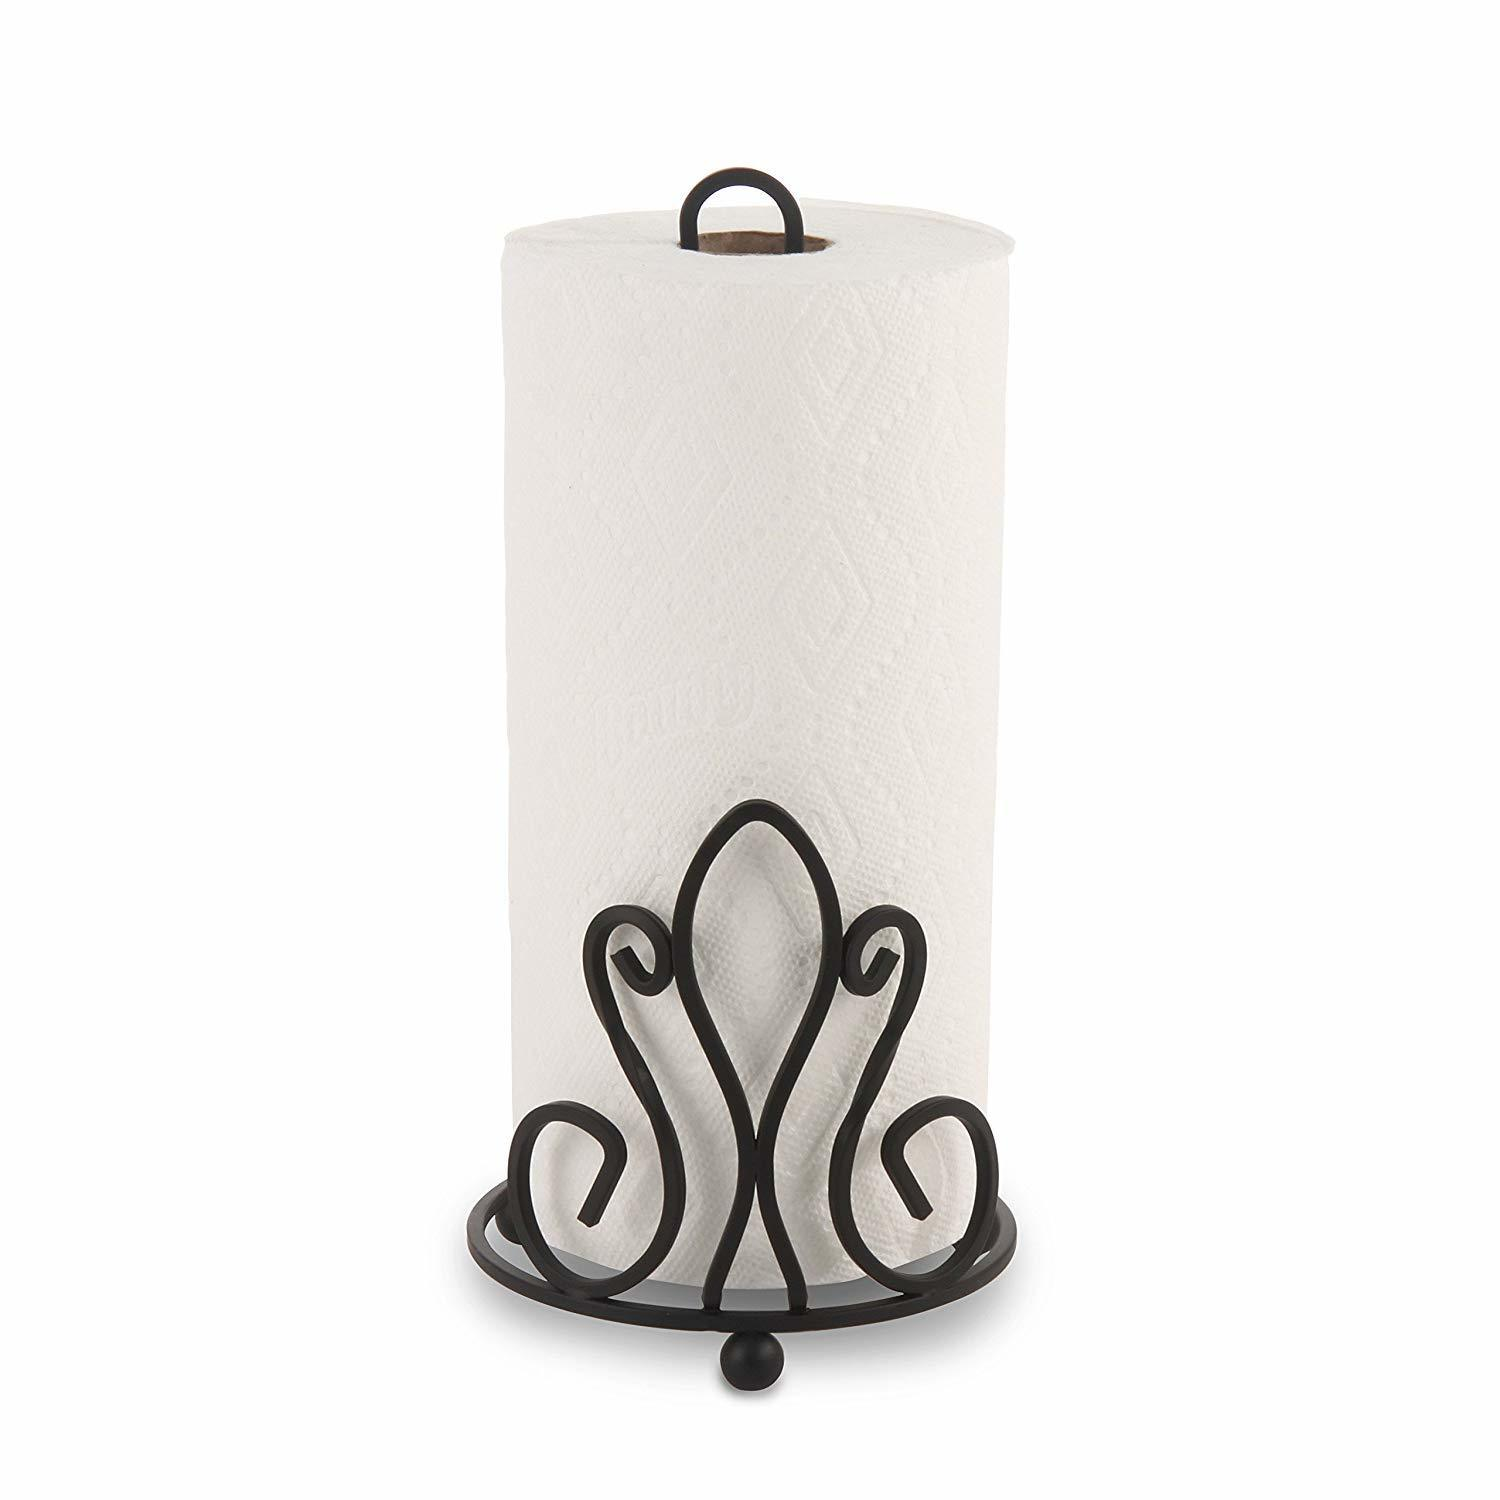 Wrought Iron Tissue Roll/Paper Towel Holder for Kitchen and Dining Table